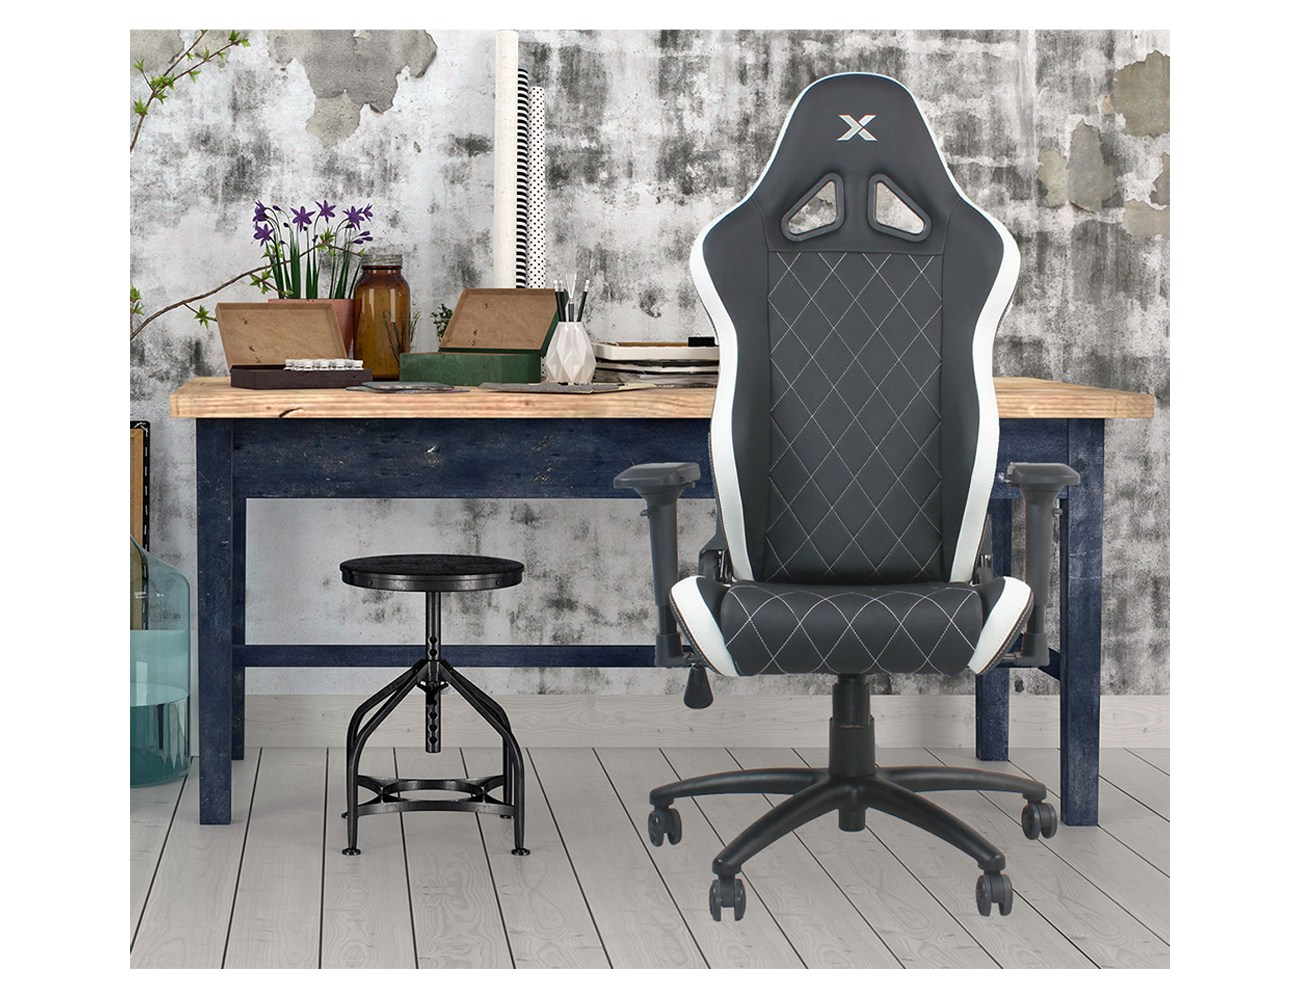 RapidX Ferrino Ergonomic Desk Chair